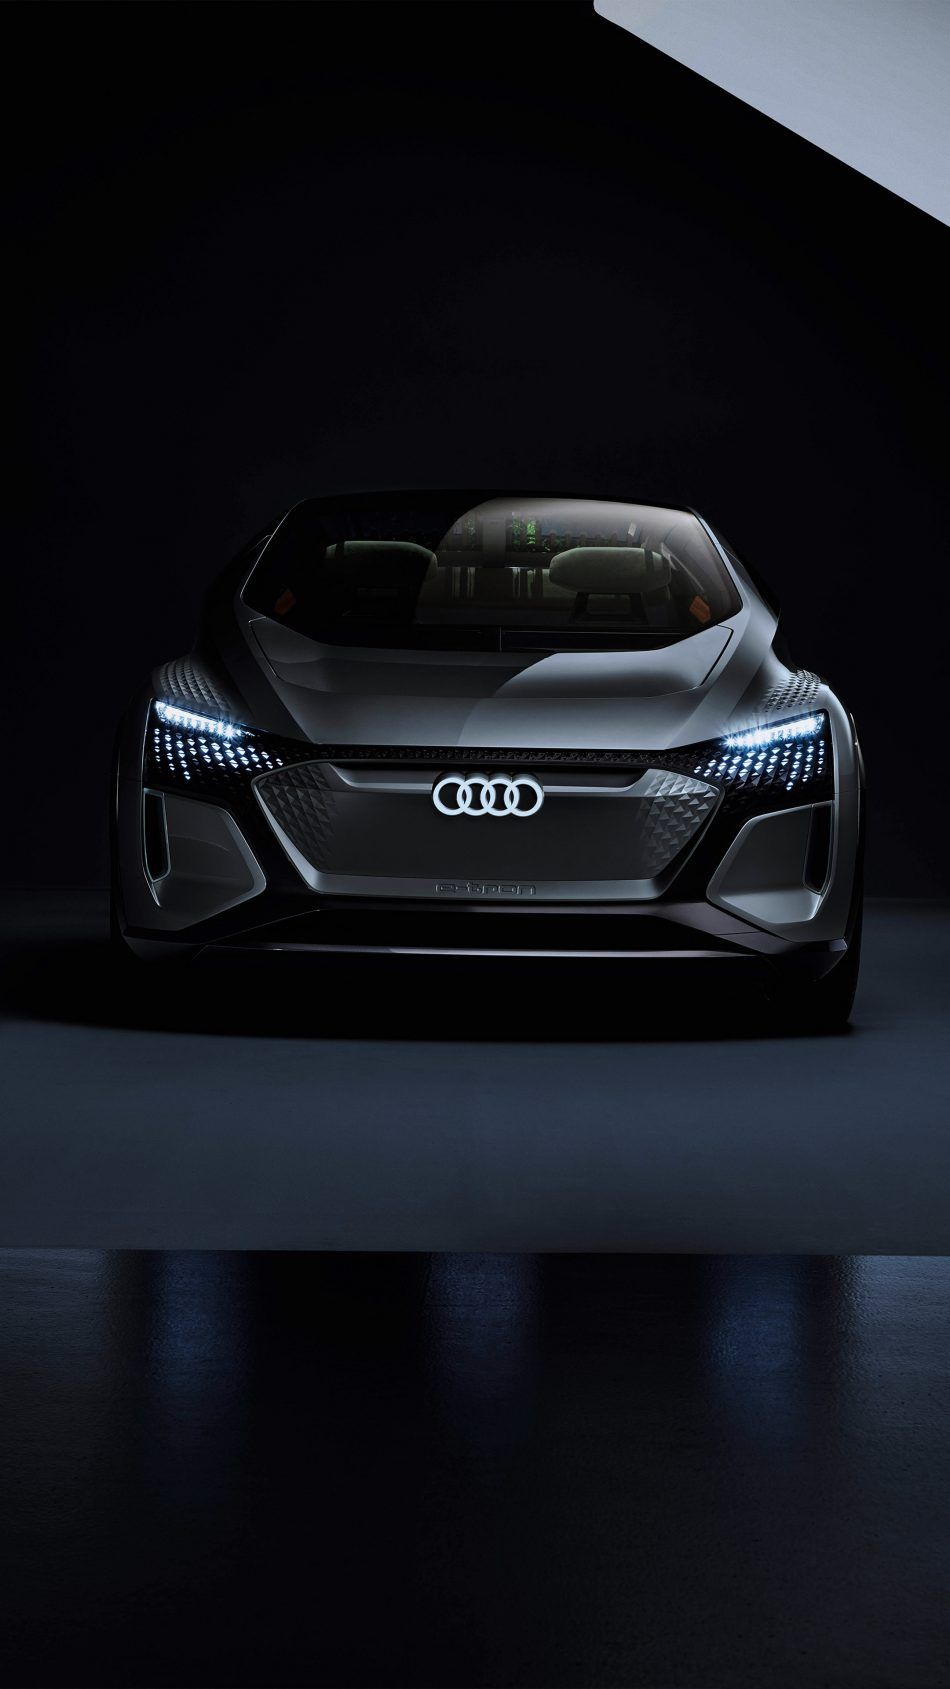 Audi Ai Me Concept Cars 2019 Concept Cars New Car Wallpaper Car